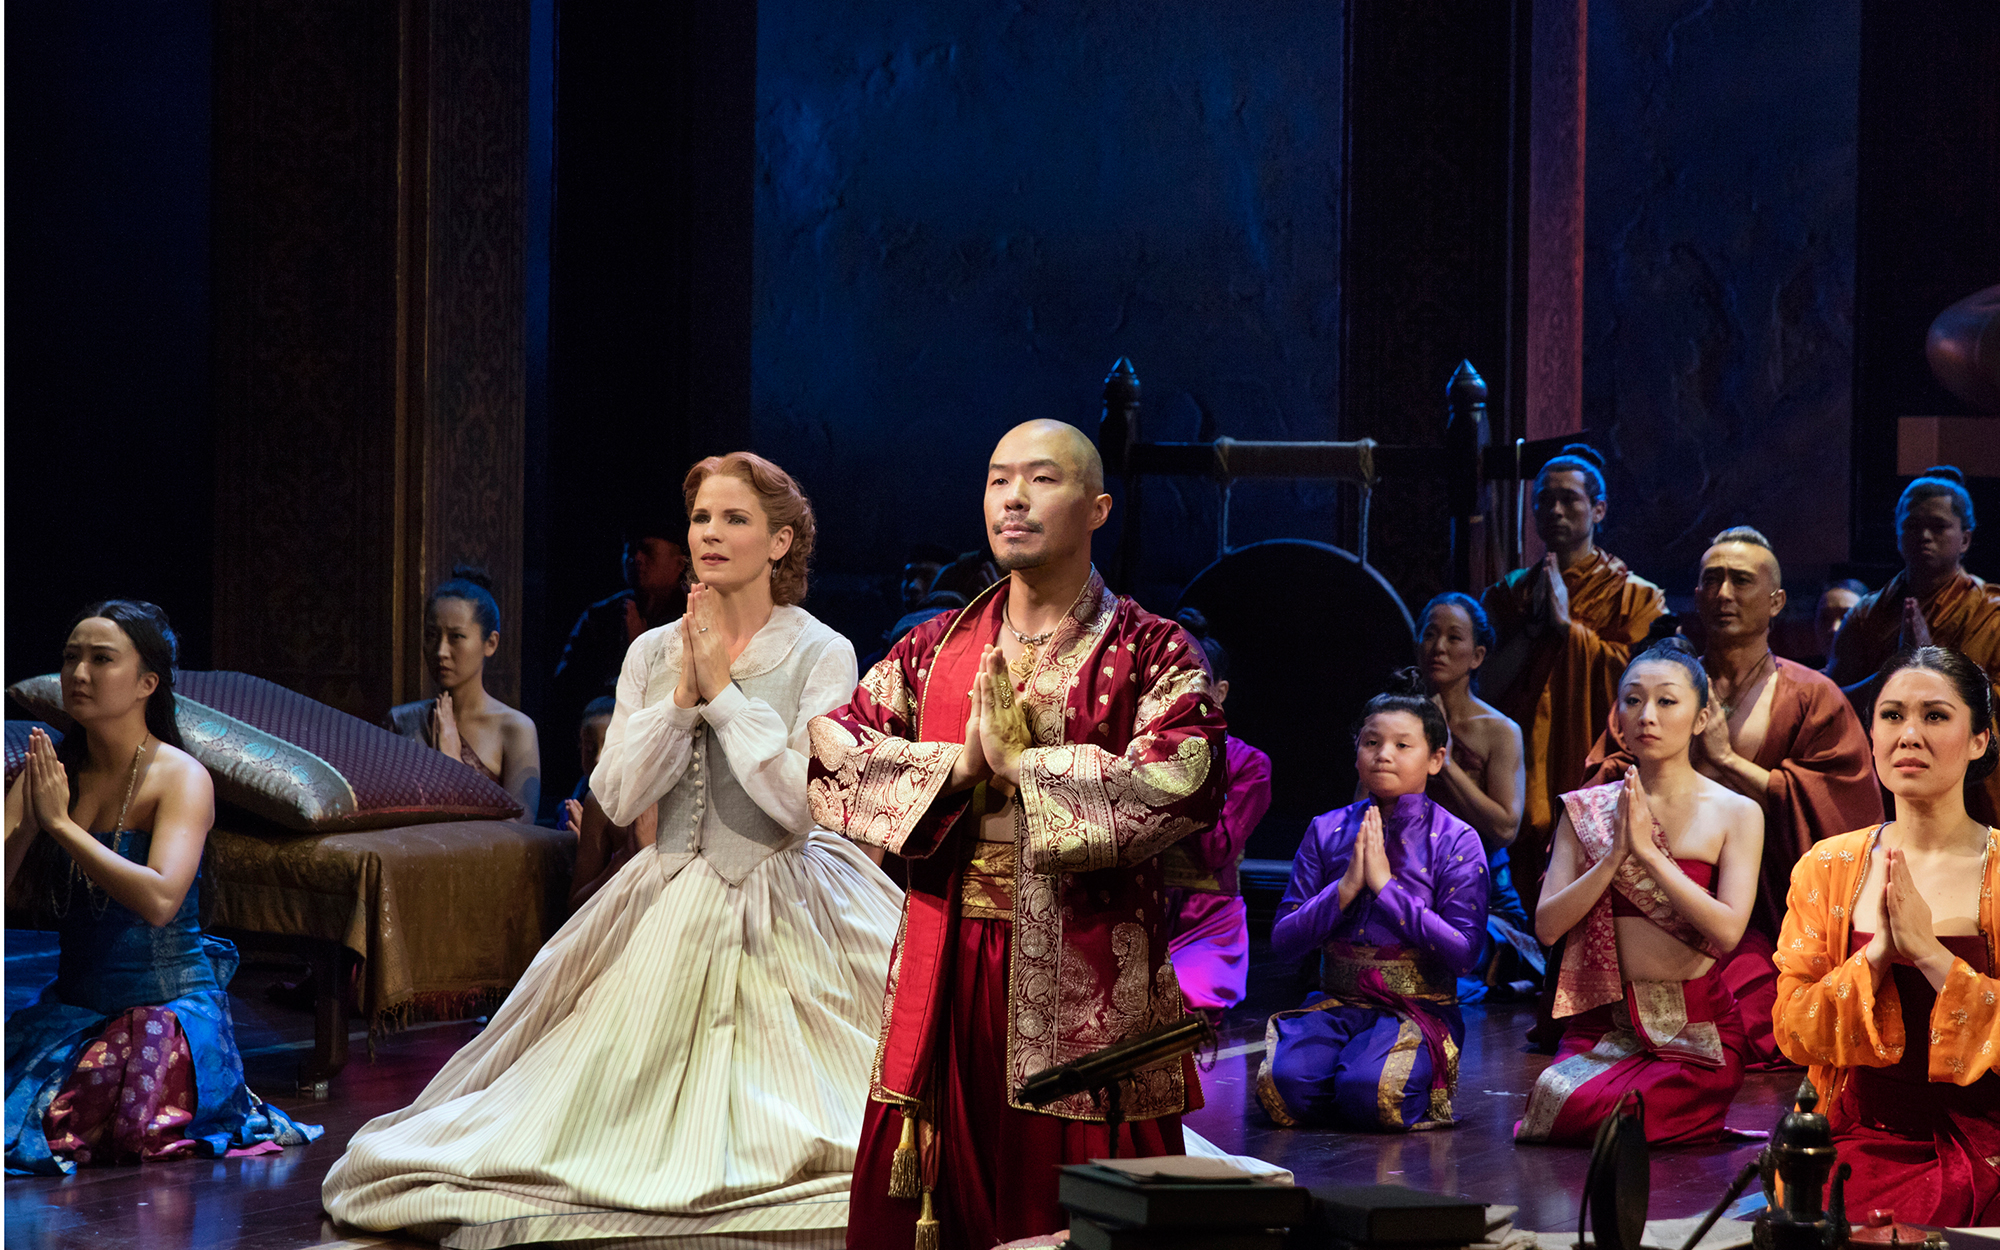 Broadway show, The King & I